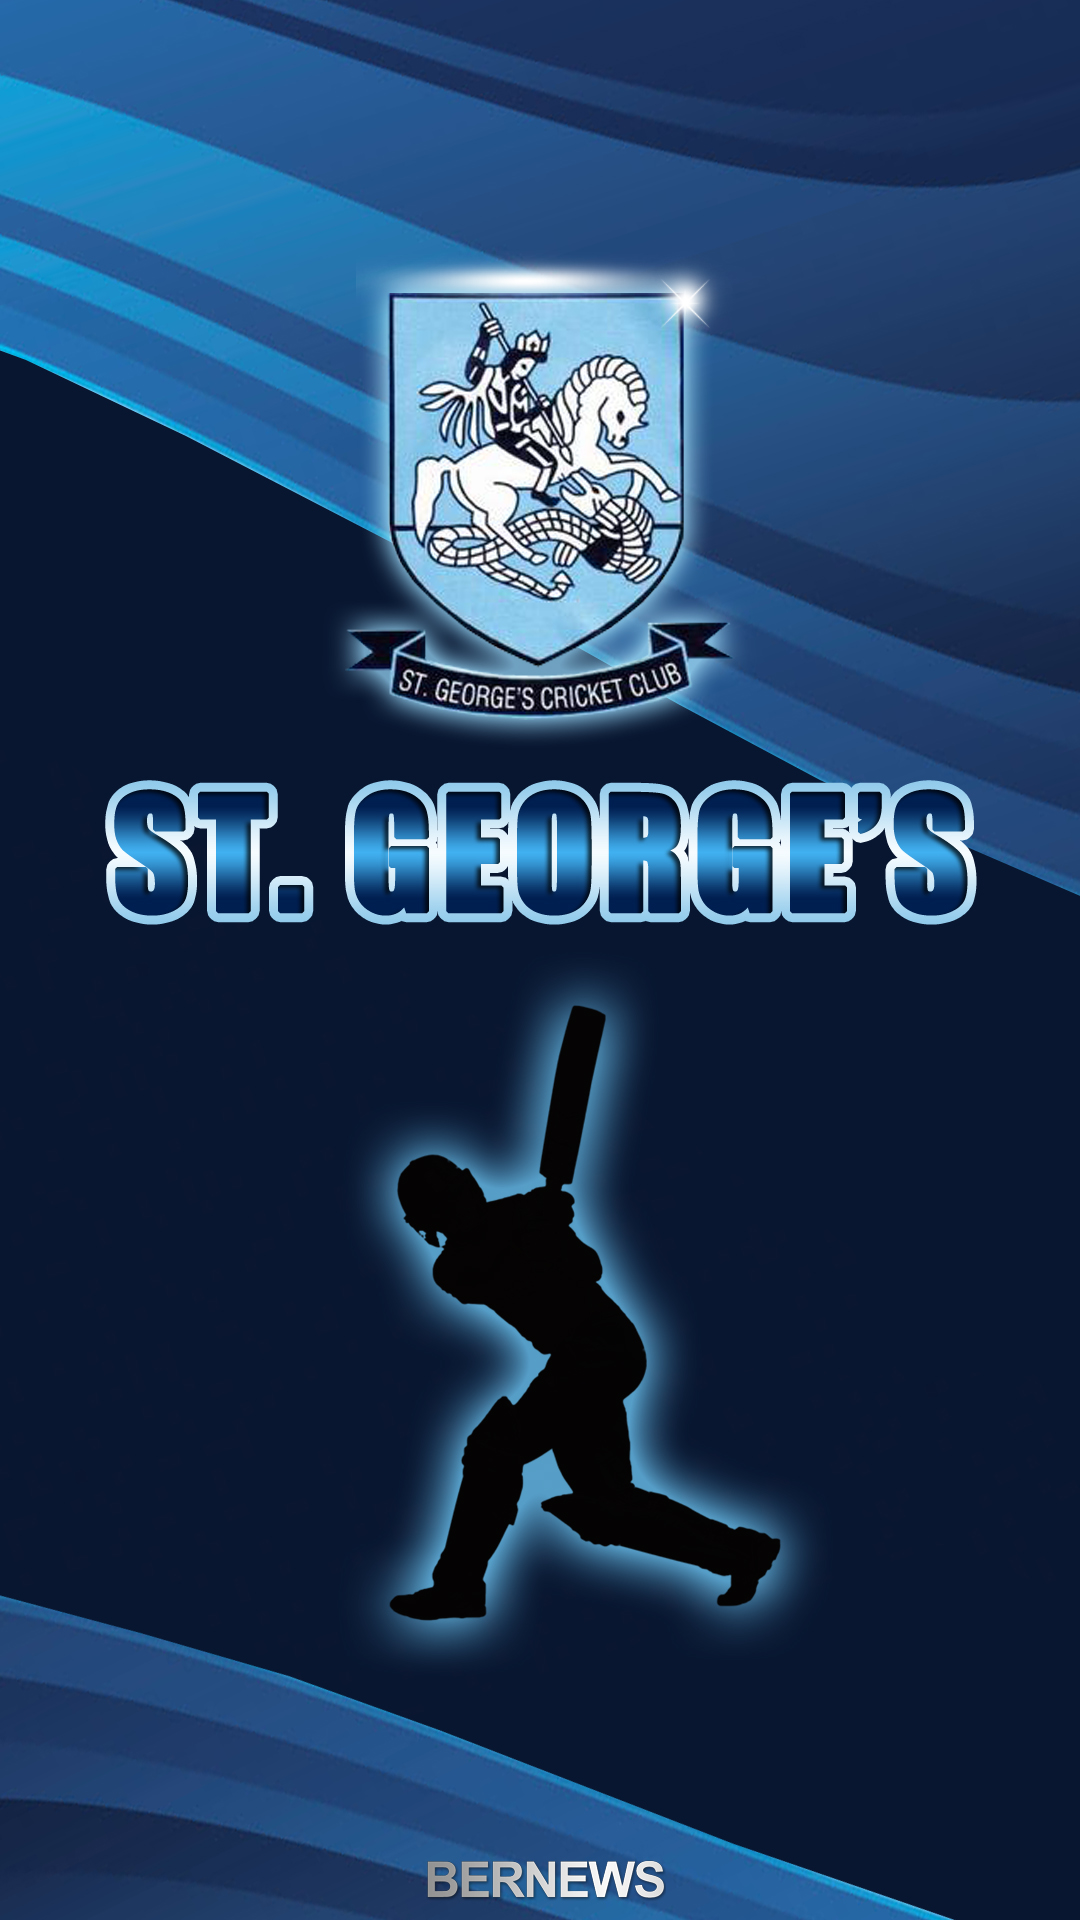 St Georges Cup Match Bermuda Phone Wallpaper by Bernews 2018 (5)